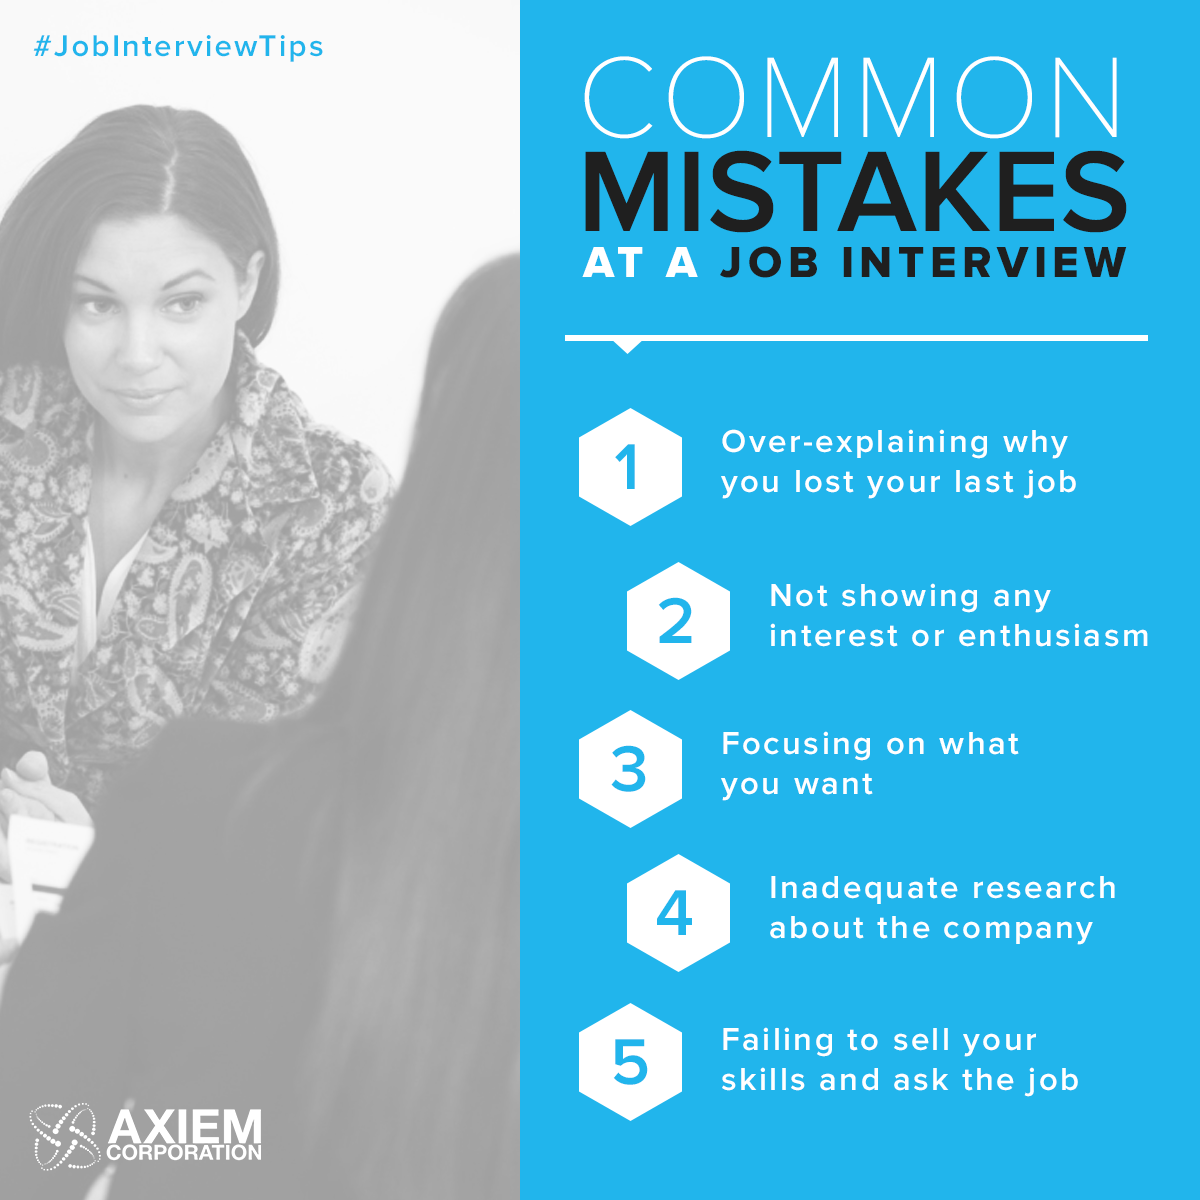 job interview tips common mistakes at a job interview job job interview tips common mistakes at a job interview